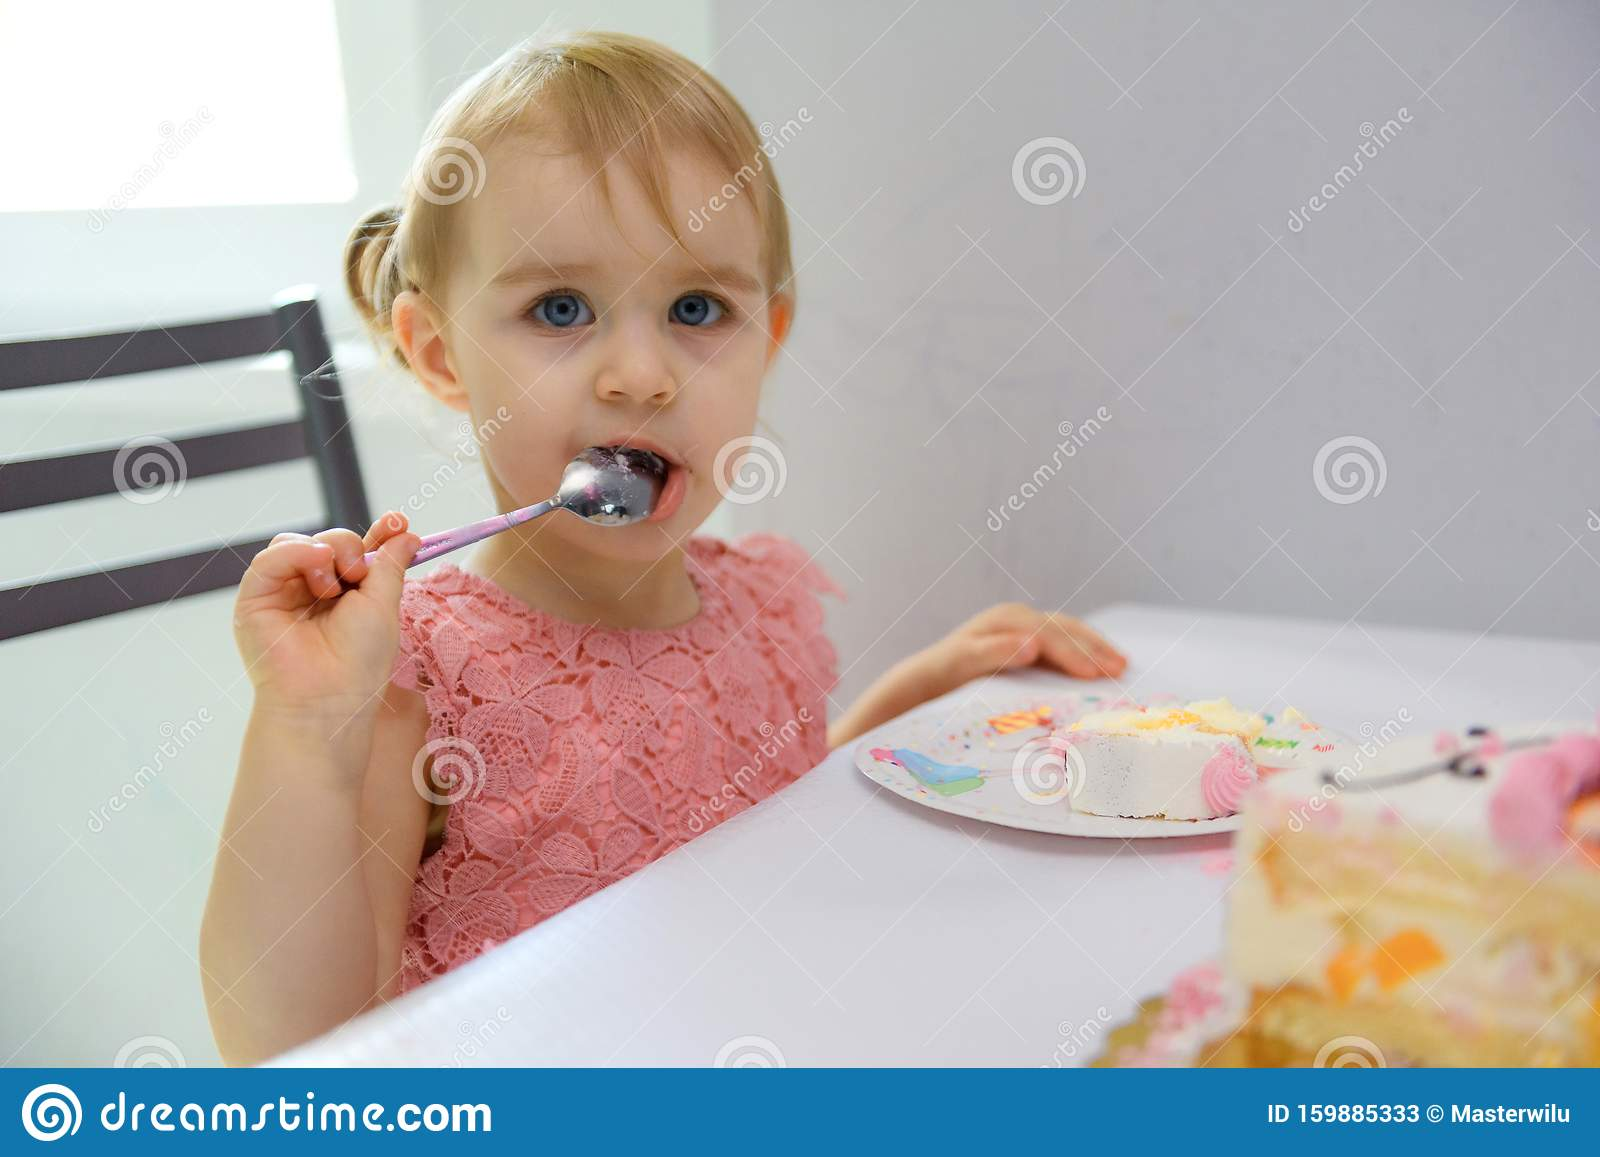 Fine Baby Girl 1 Year Old Eating Birthday Cake In Room Birthday Party Personalised Birthday Cards Petedlily Jamesorg